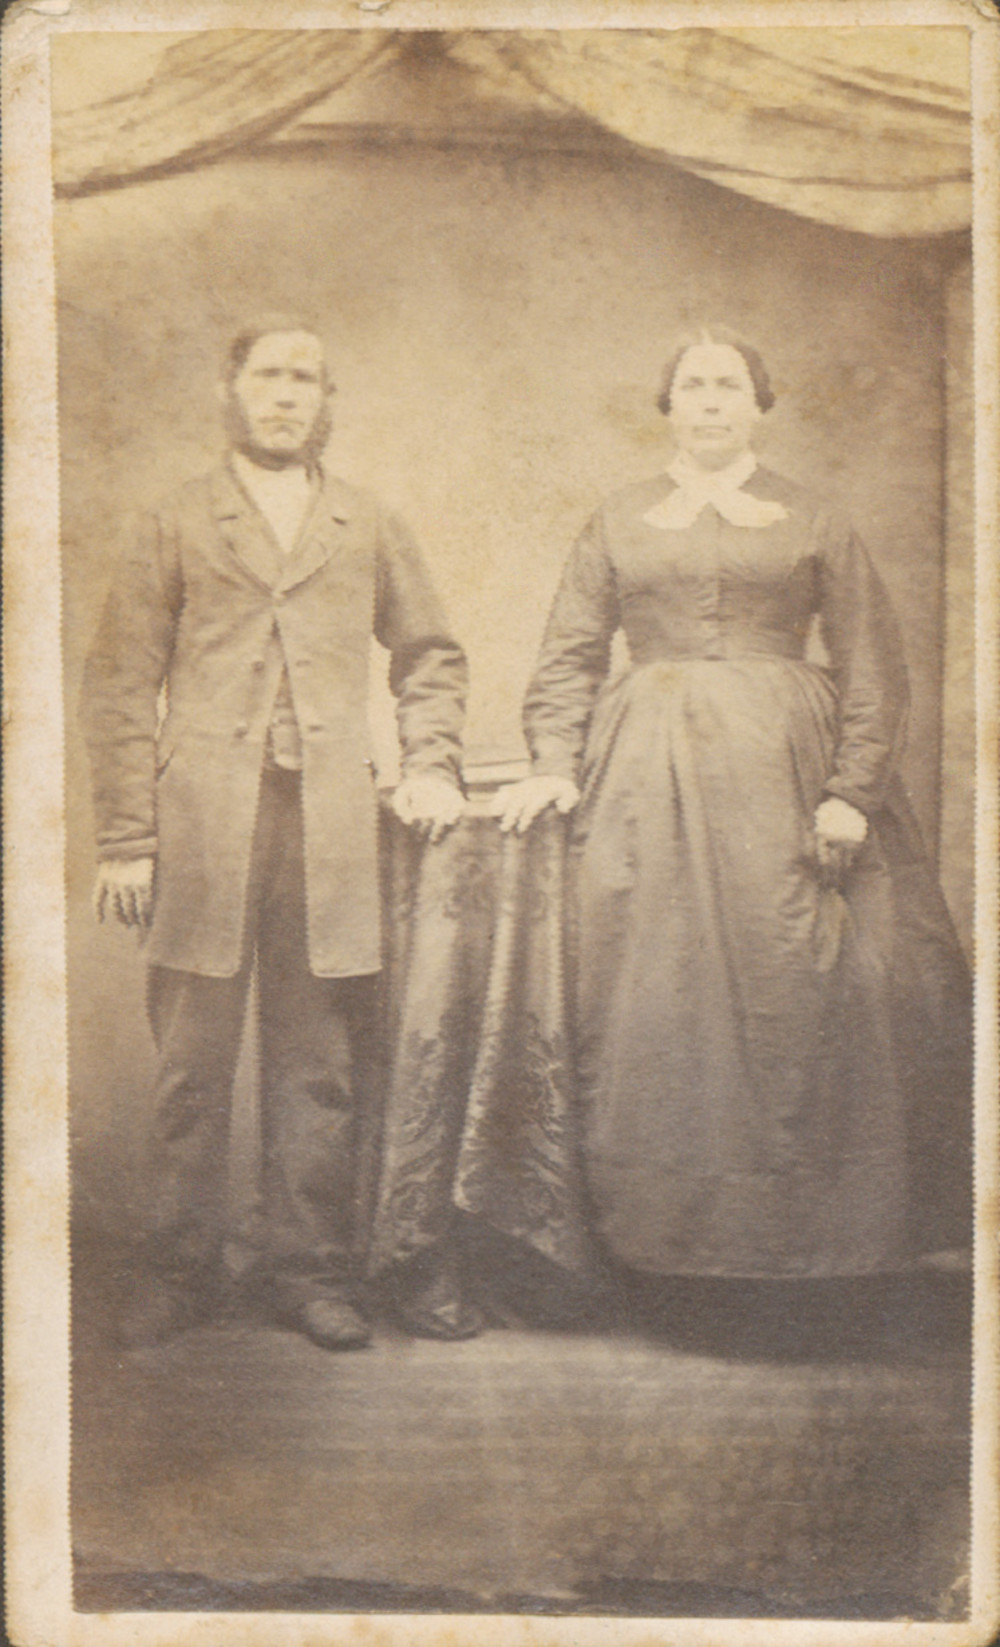 Mr. & Mrs. Campbell of Glencoe